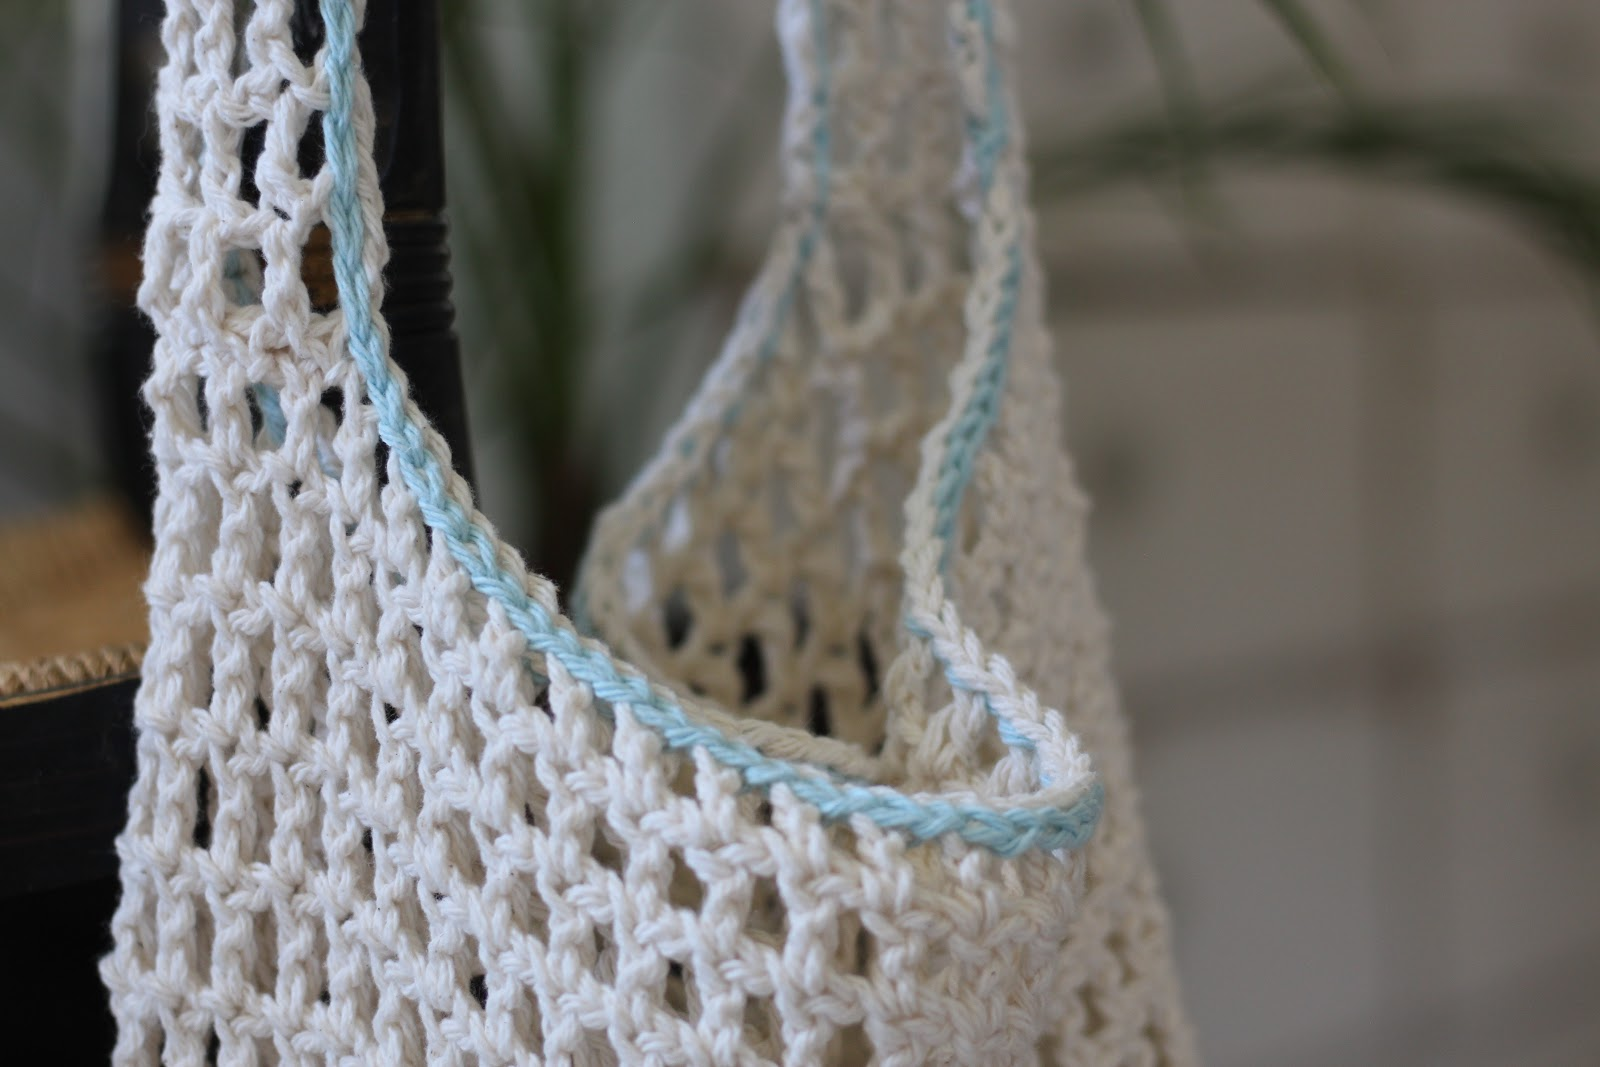 The slip stitch edging give this bag a simple finishing touch!